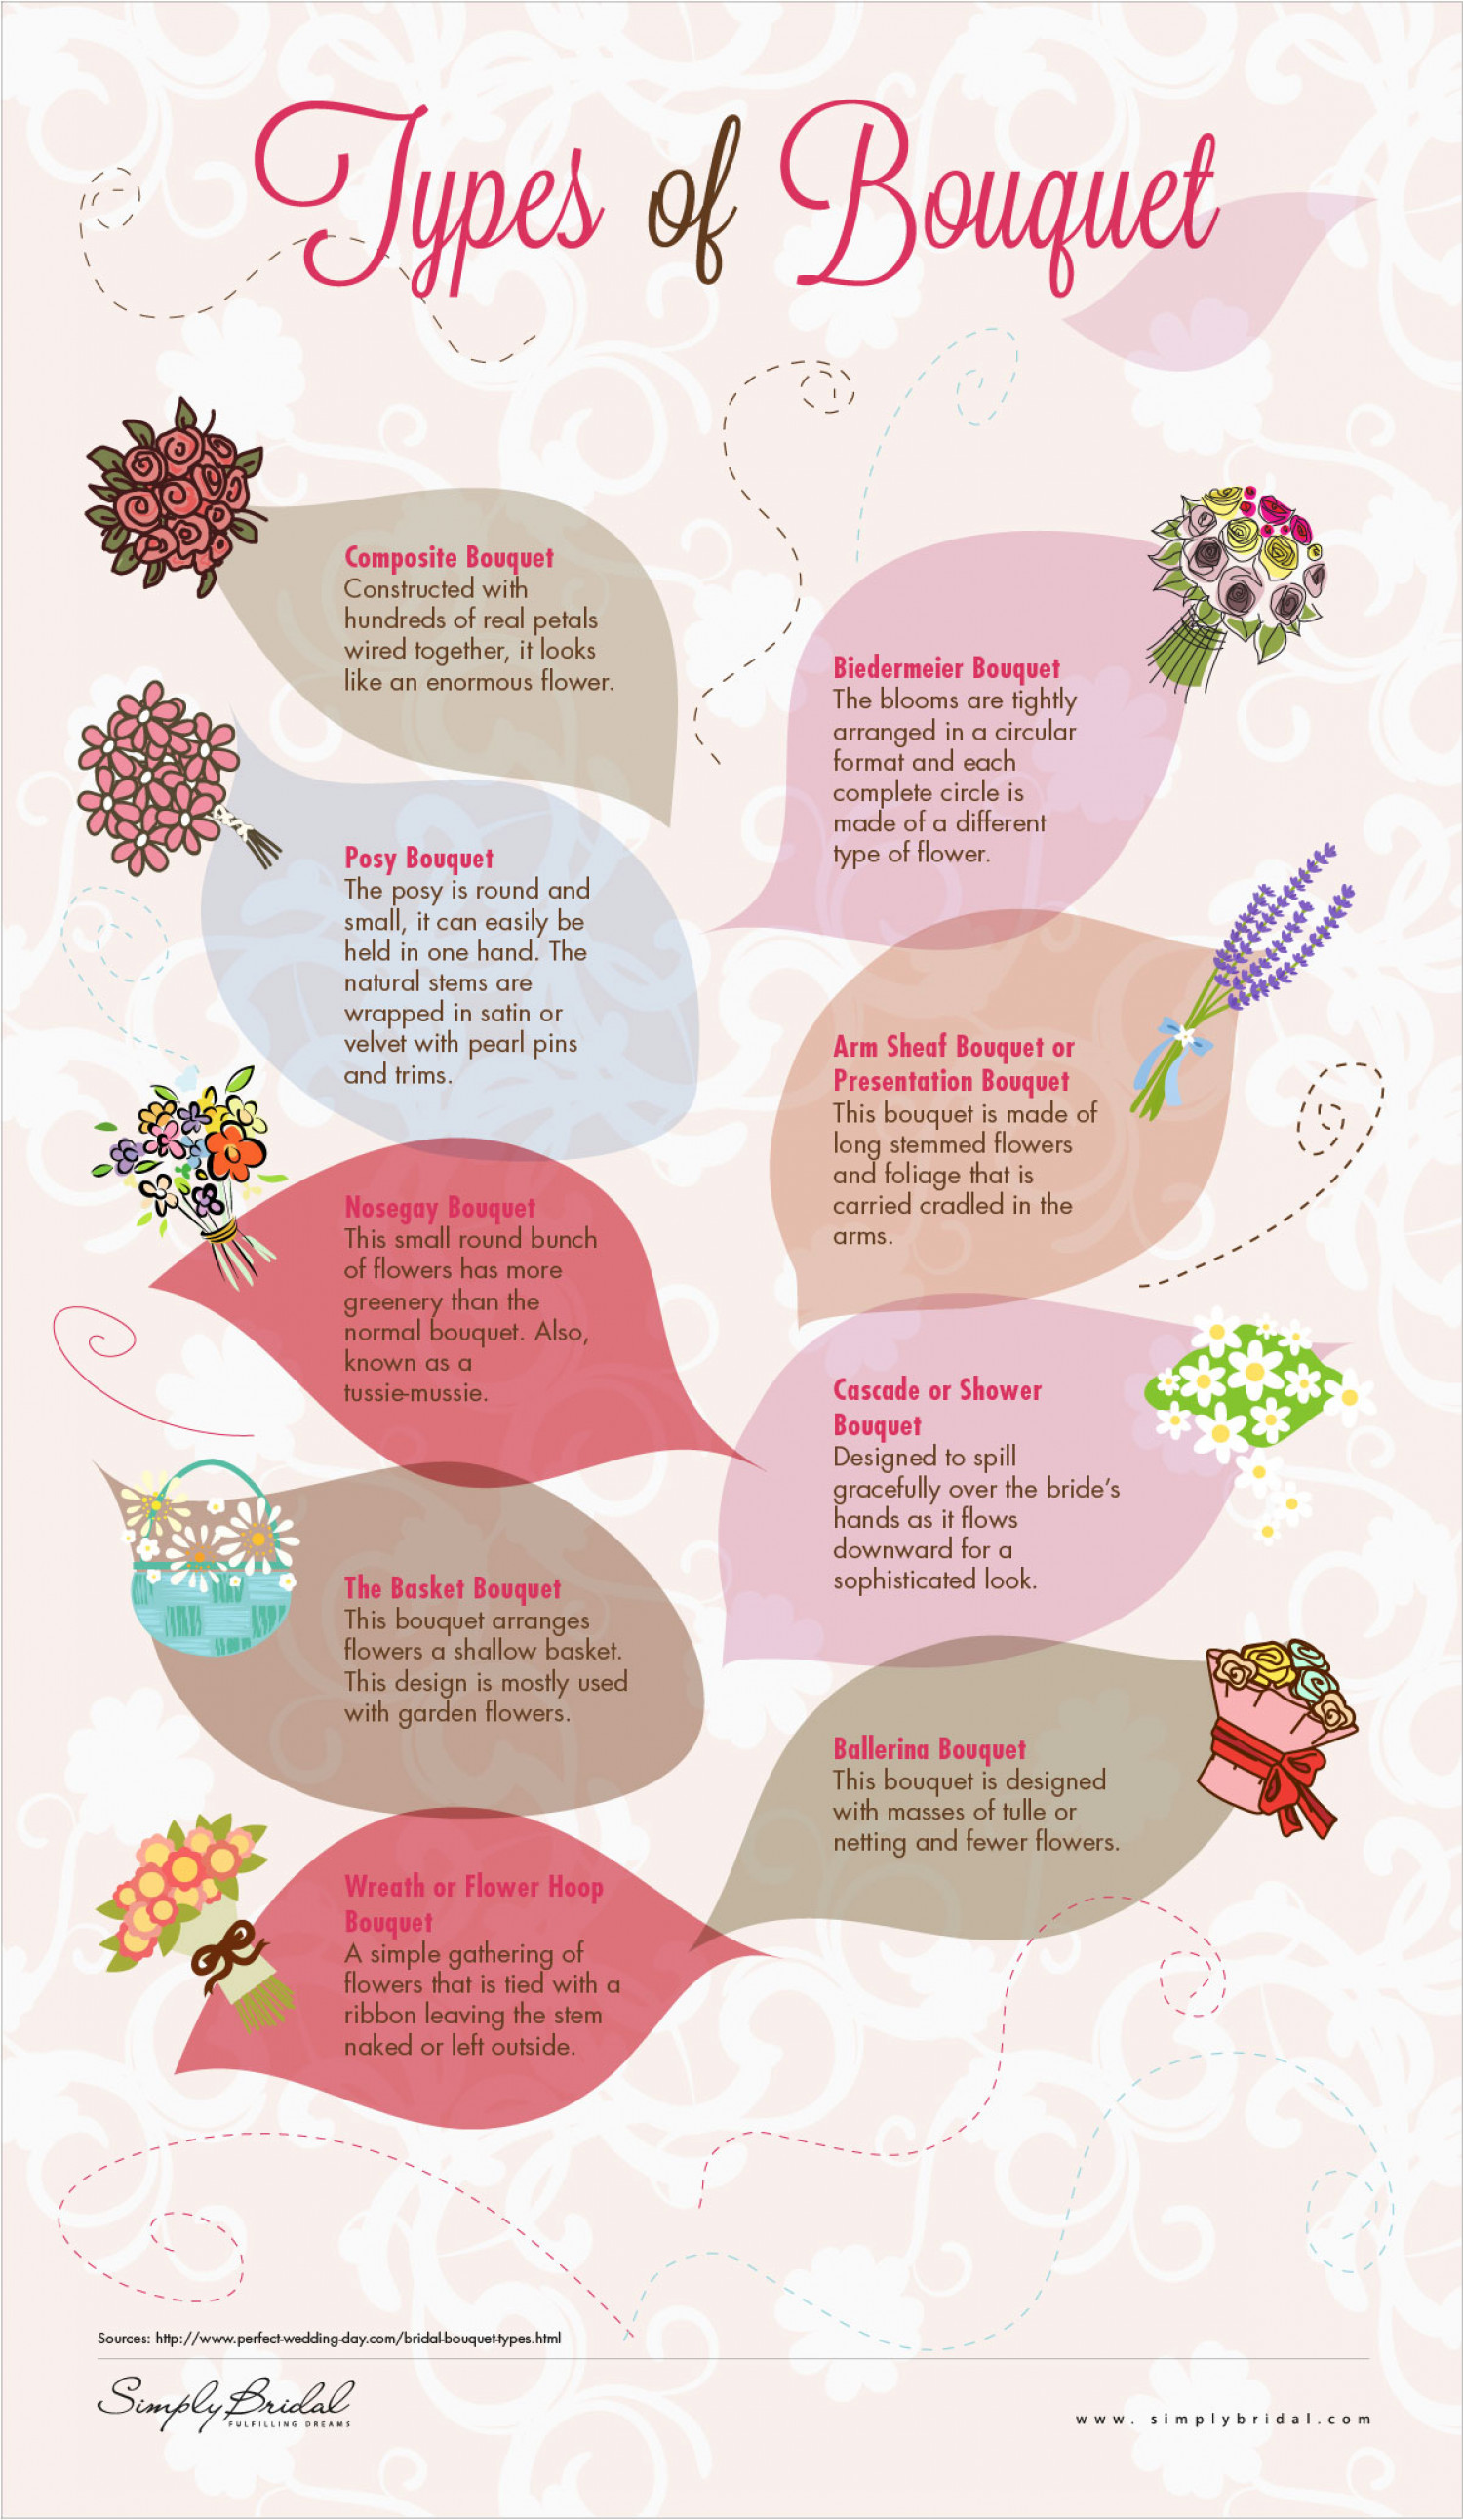 Types of Bouquet | Visual.ly